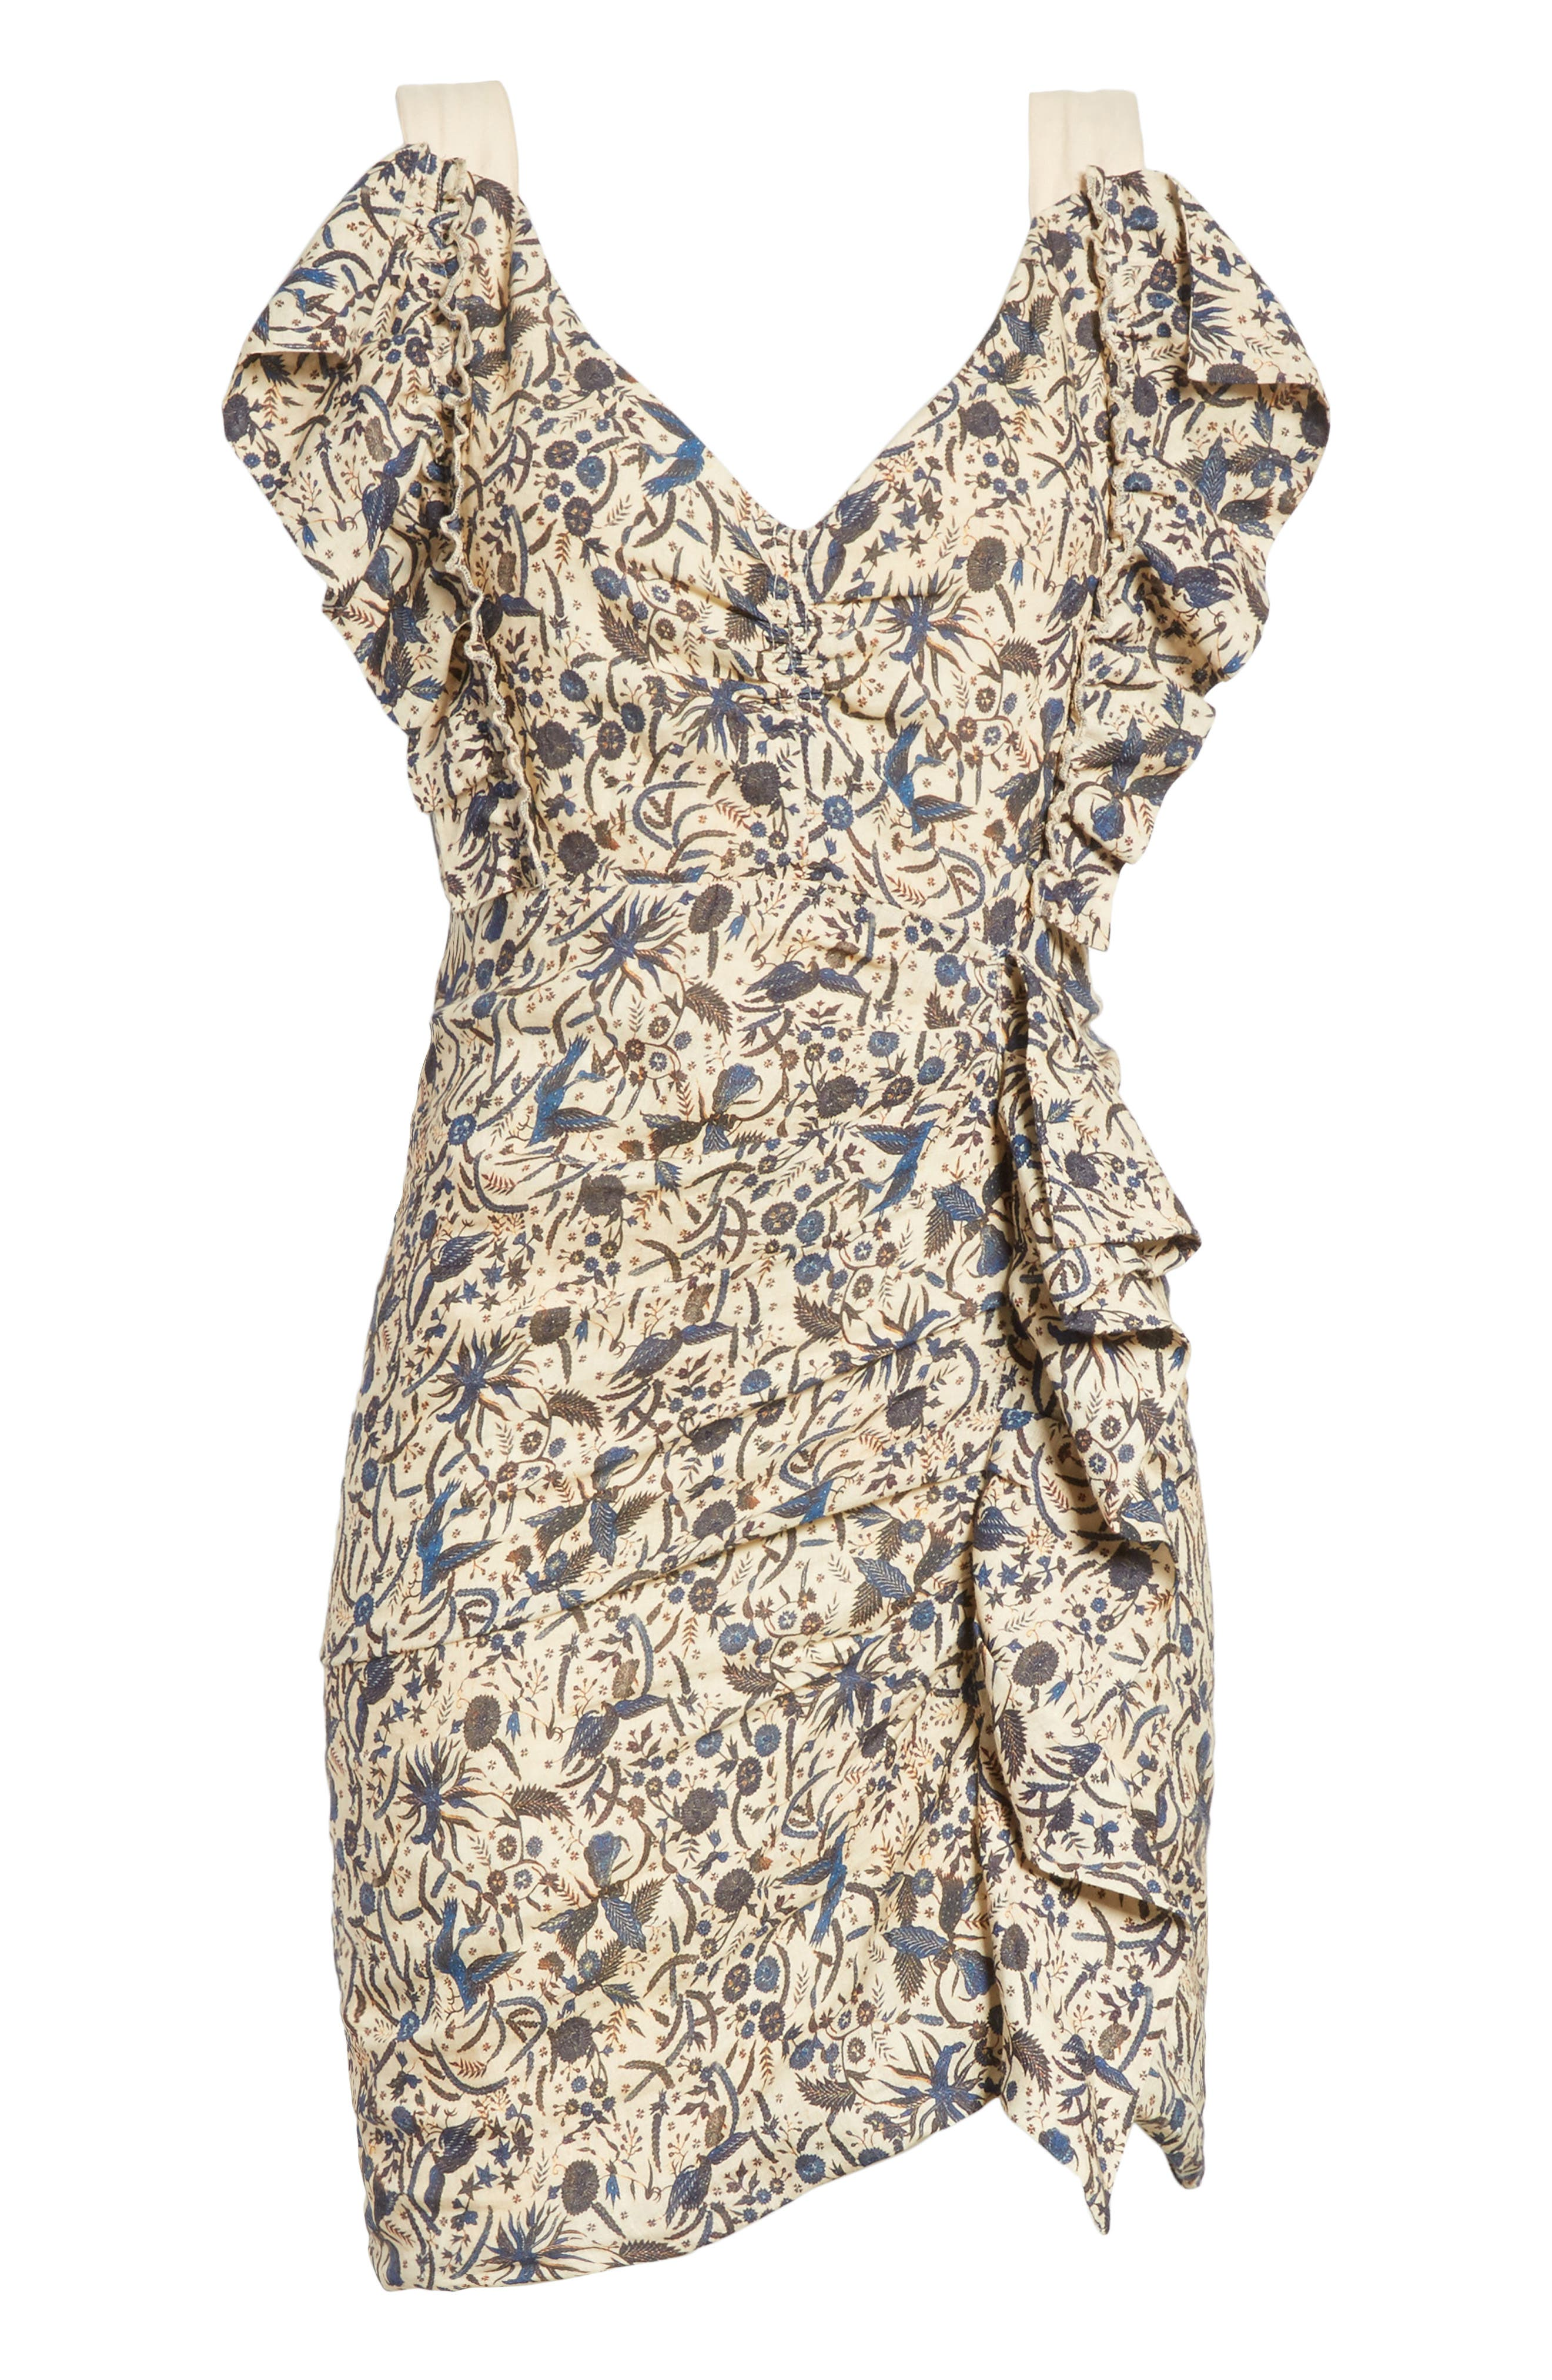 Topaz Print Linen Dress,                             Alternate thumbnail 6, color,                             250